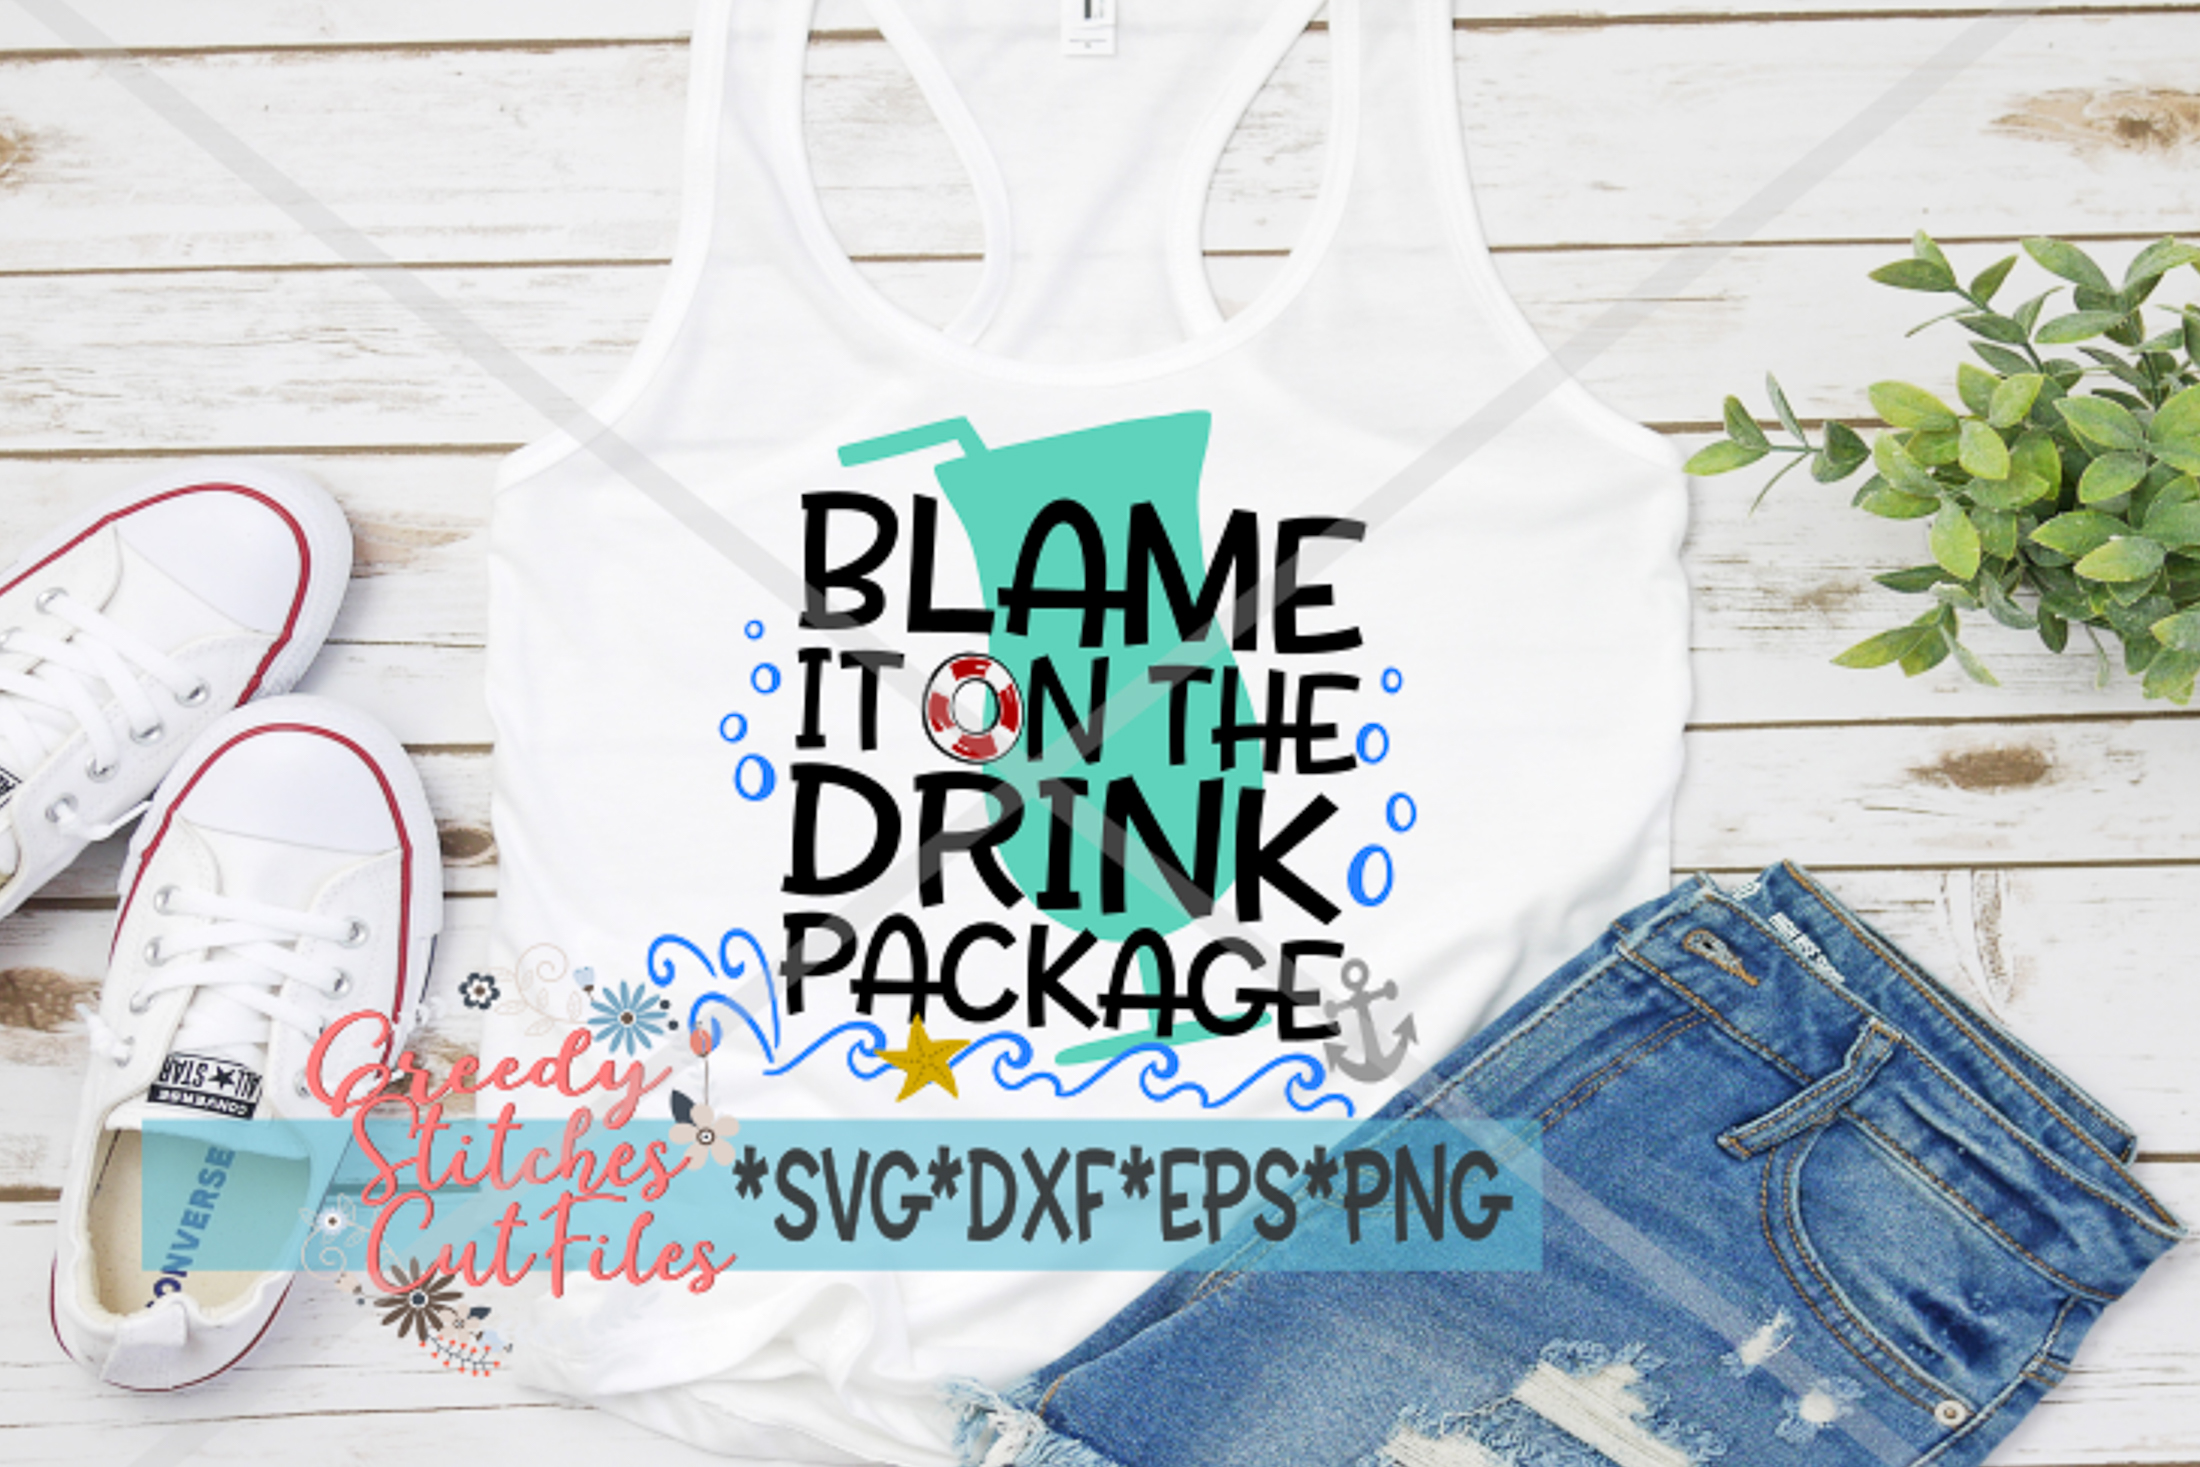 Blame It On The Drink Package Cruise SVG DXF EPS PNG example image 2